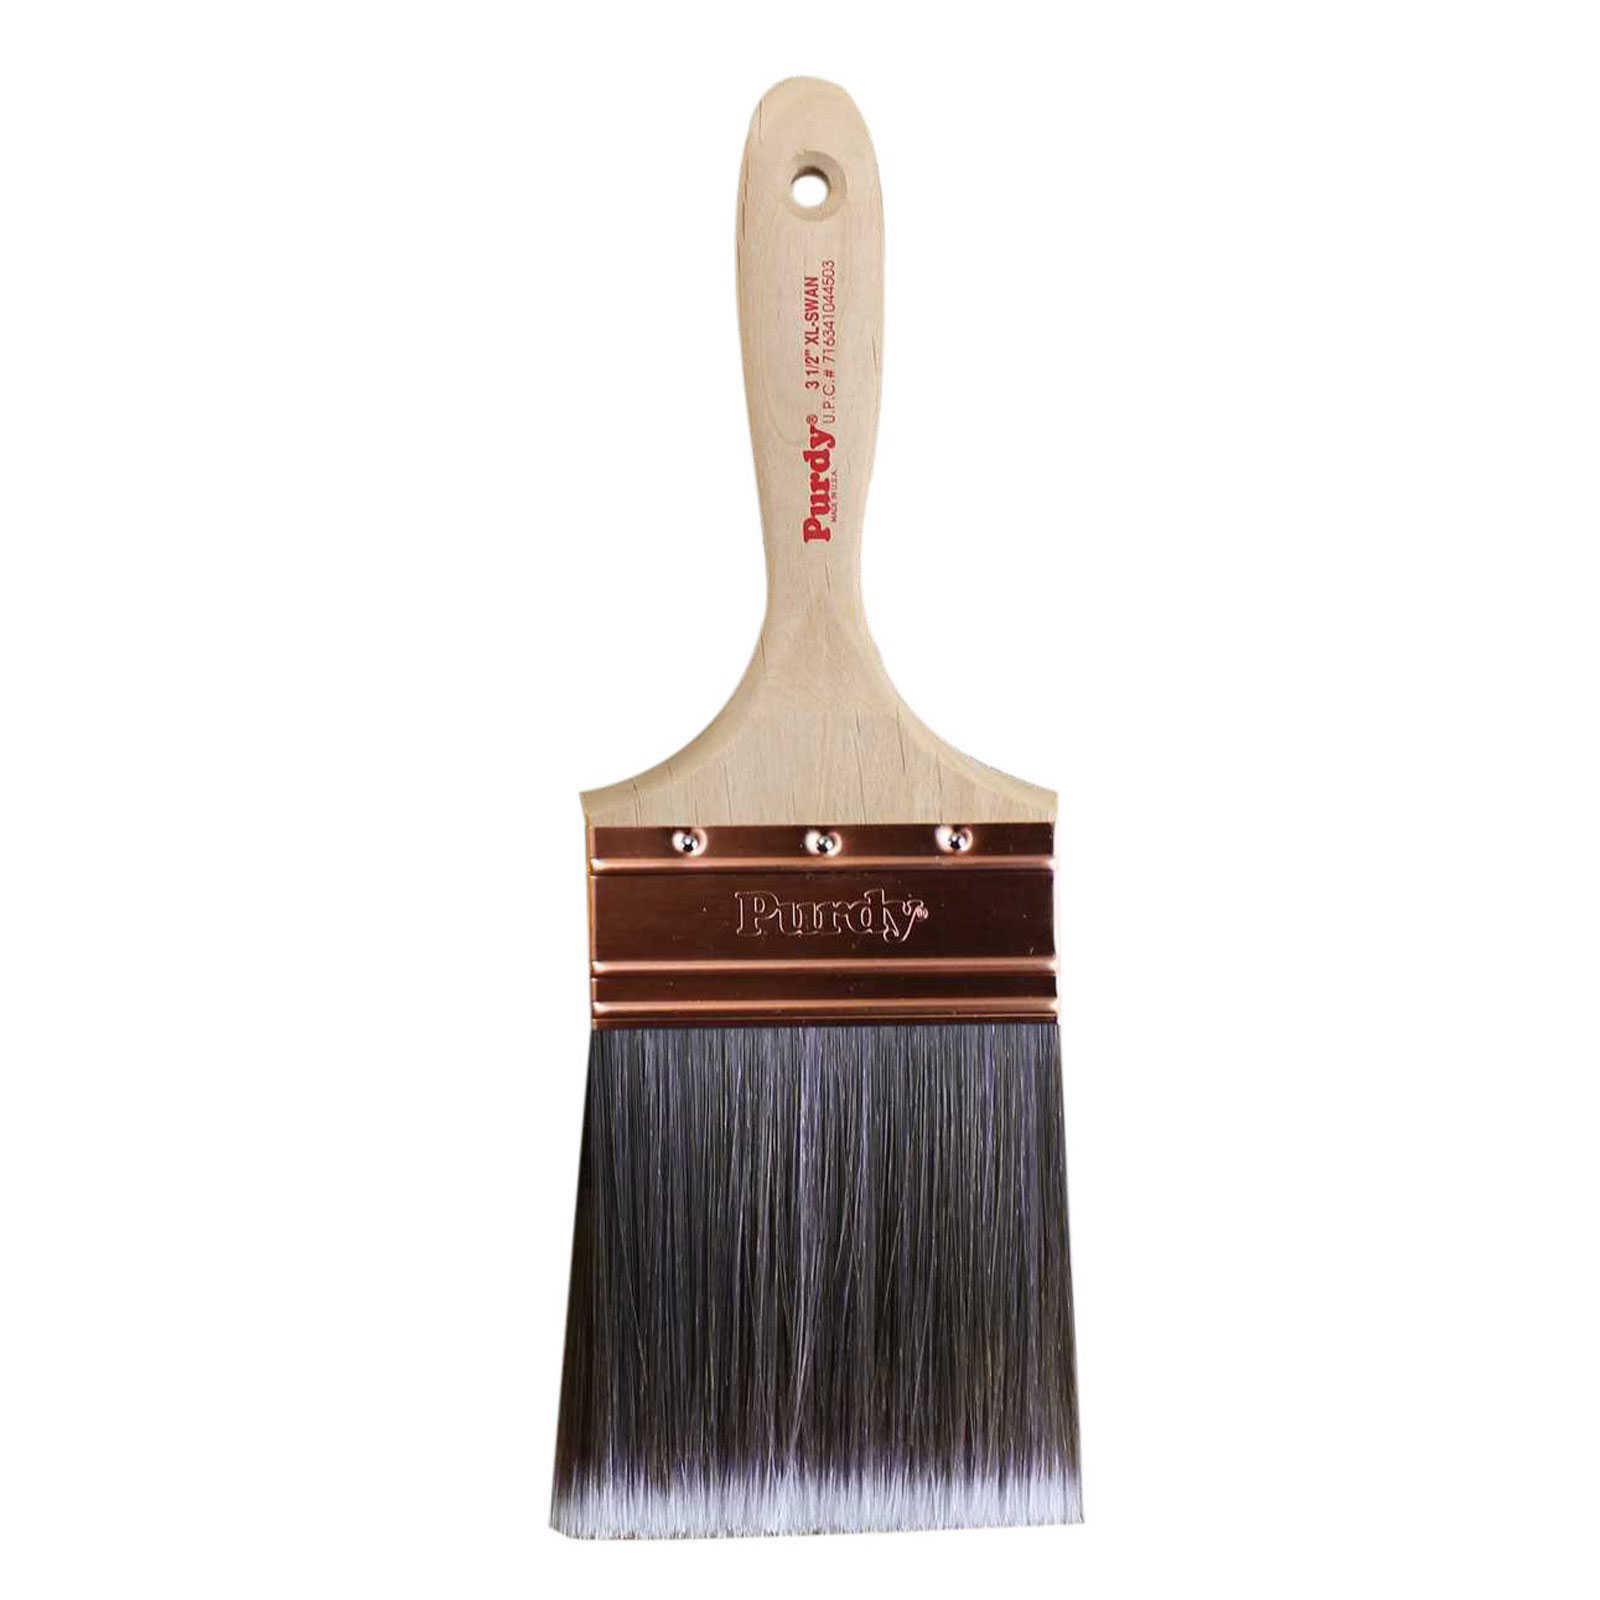 Purdy Paint Brush 88mm 3 5 Inch Xl Swan Hand Made X 1 Genuine Made In Usa 716341044503 Ebay - Purdy Paint Brush